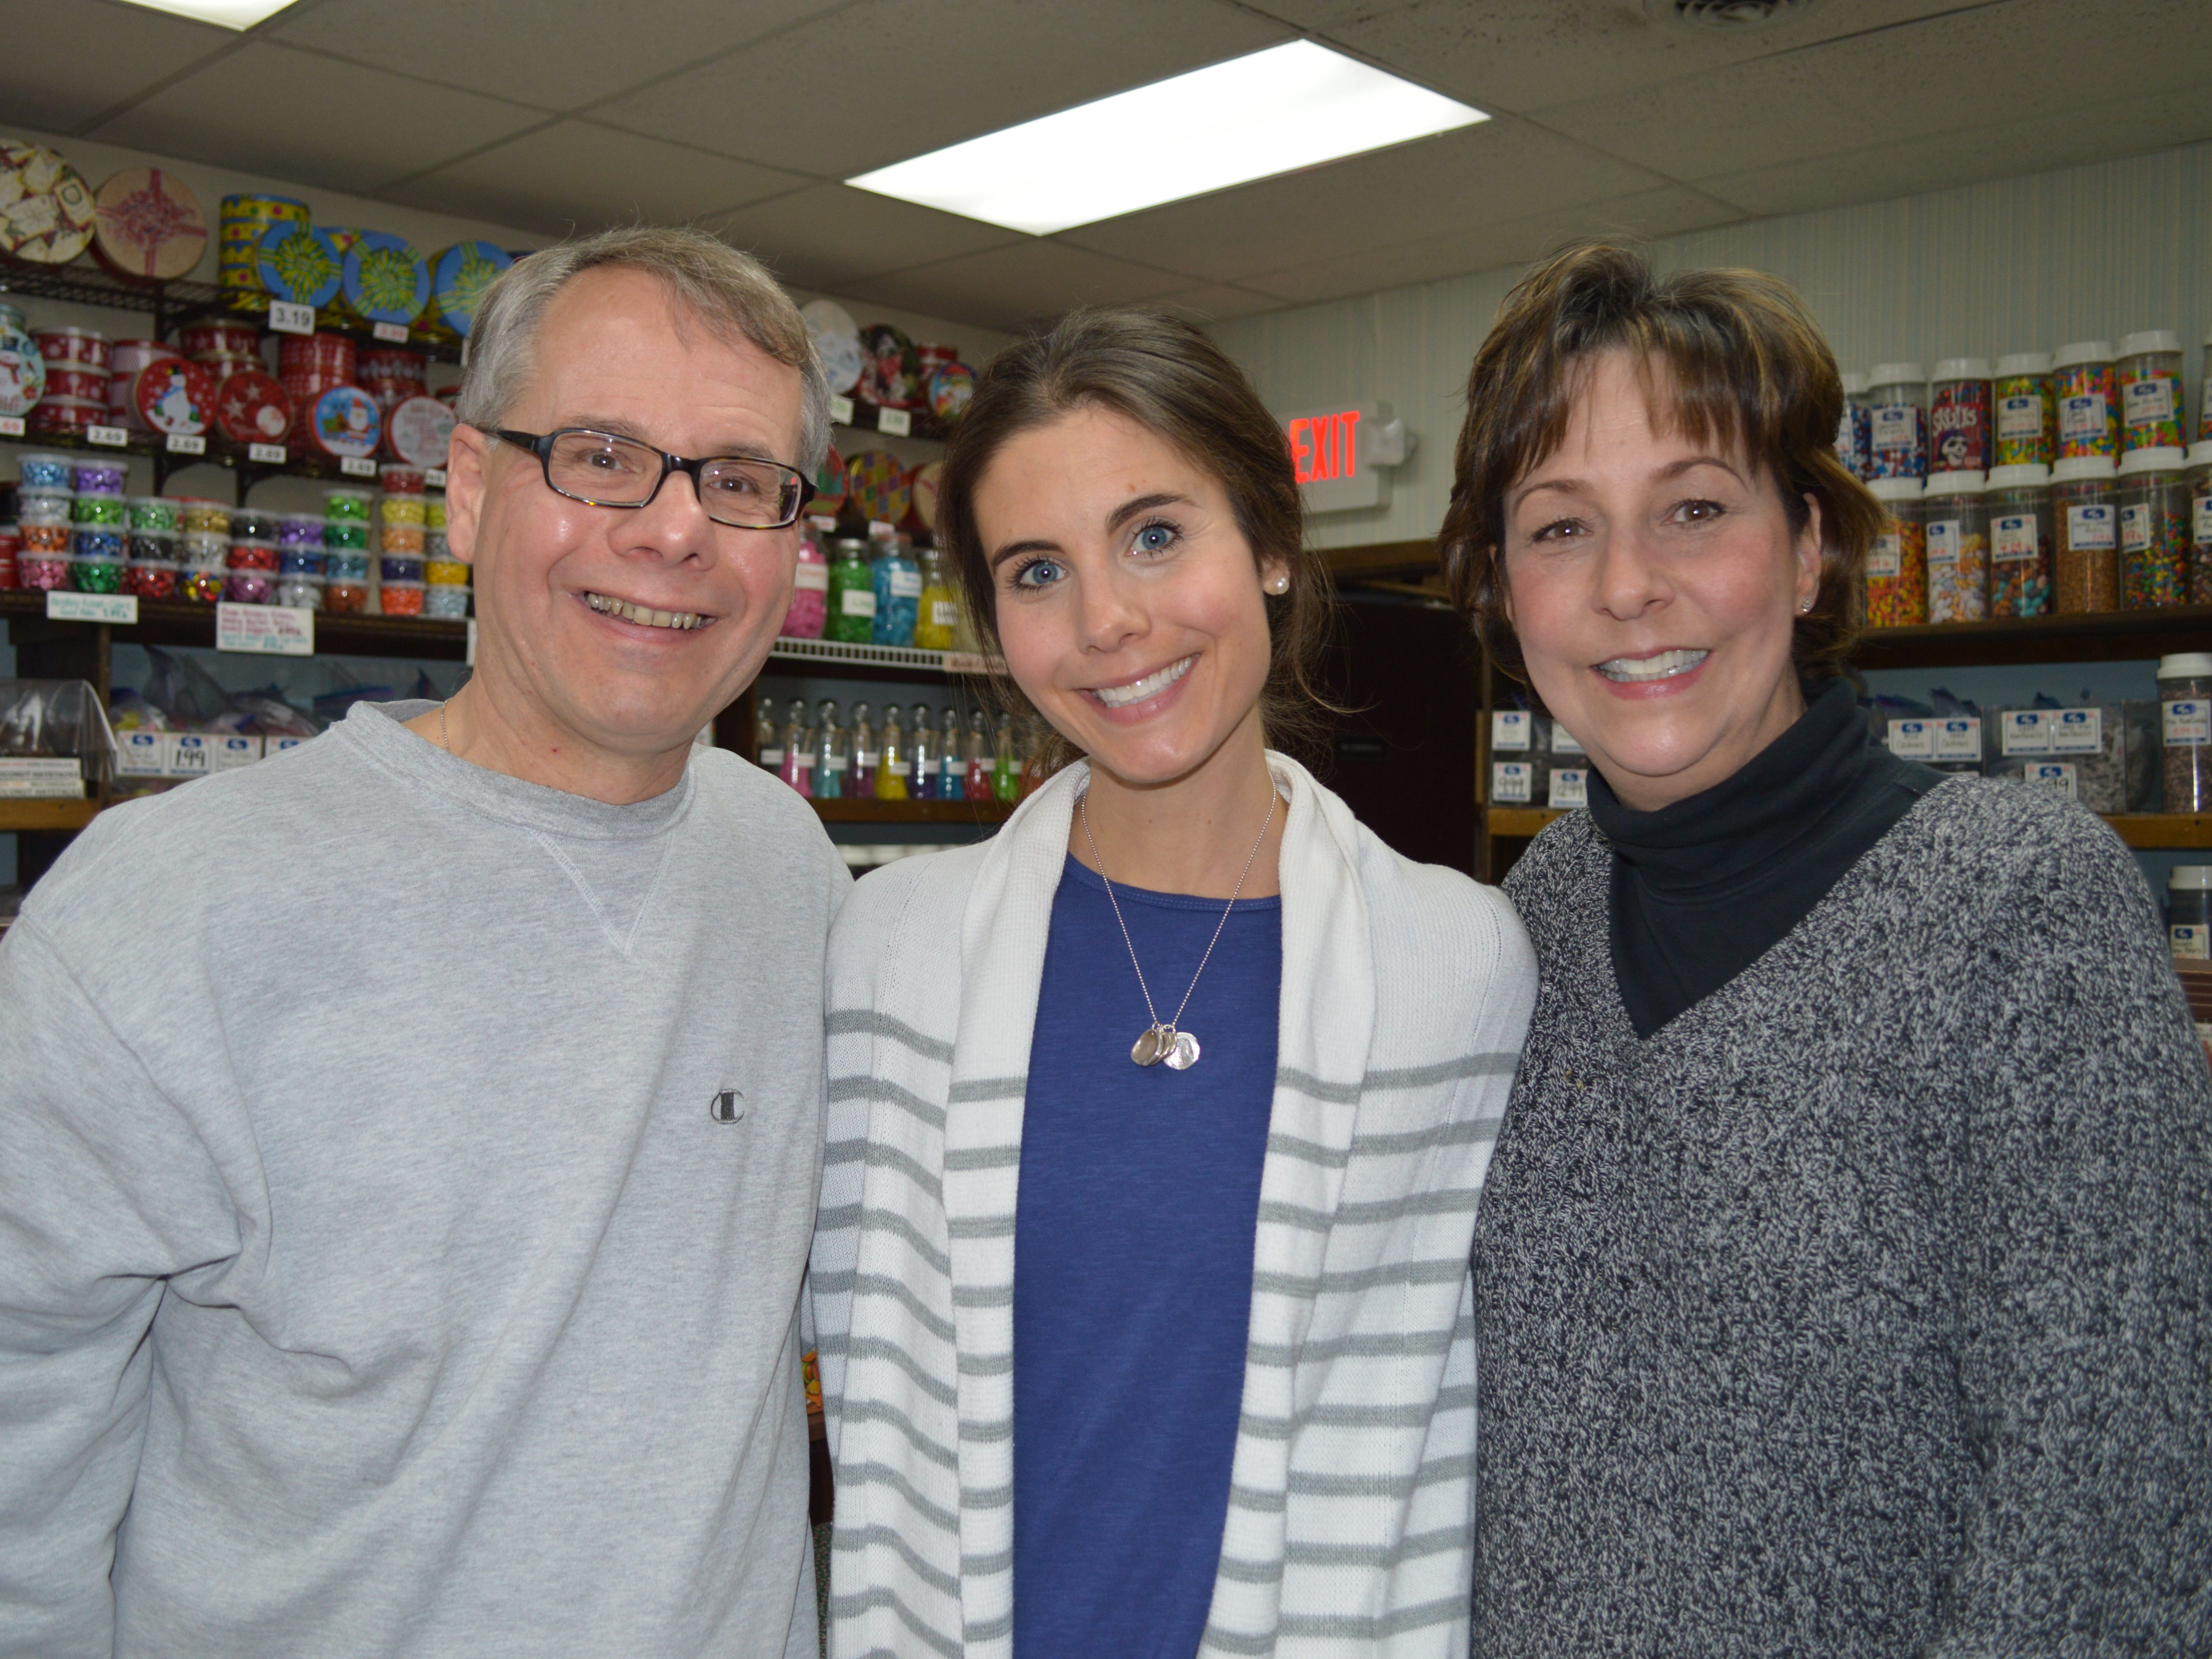 Bill Ziegler's family owned the George Ziegler Company, a Milwaukee-based candy factory, which closed in the 1970s. Now, Ziegler owns Half Nuts in West Allis with his wife, Mary Ziegler. Their daughters Rachel Deprey, pictured, and Emily Ziegler help out at the shop, especially around the holidays.